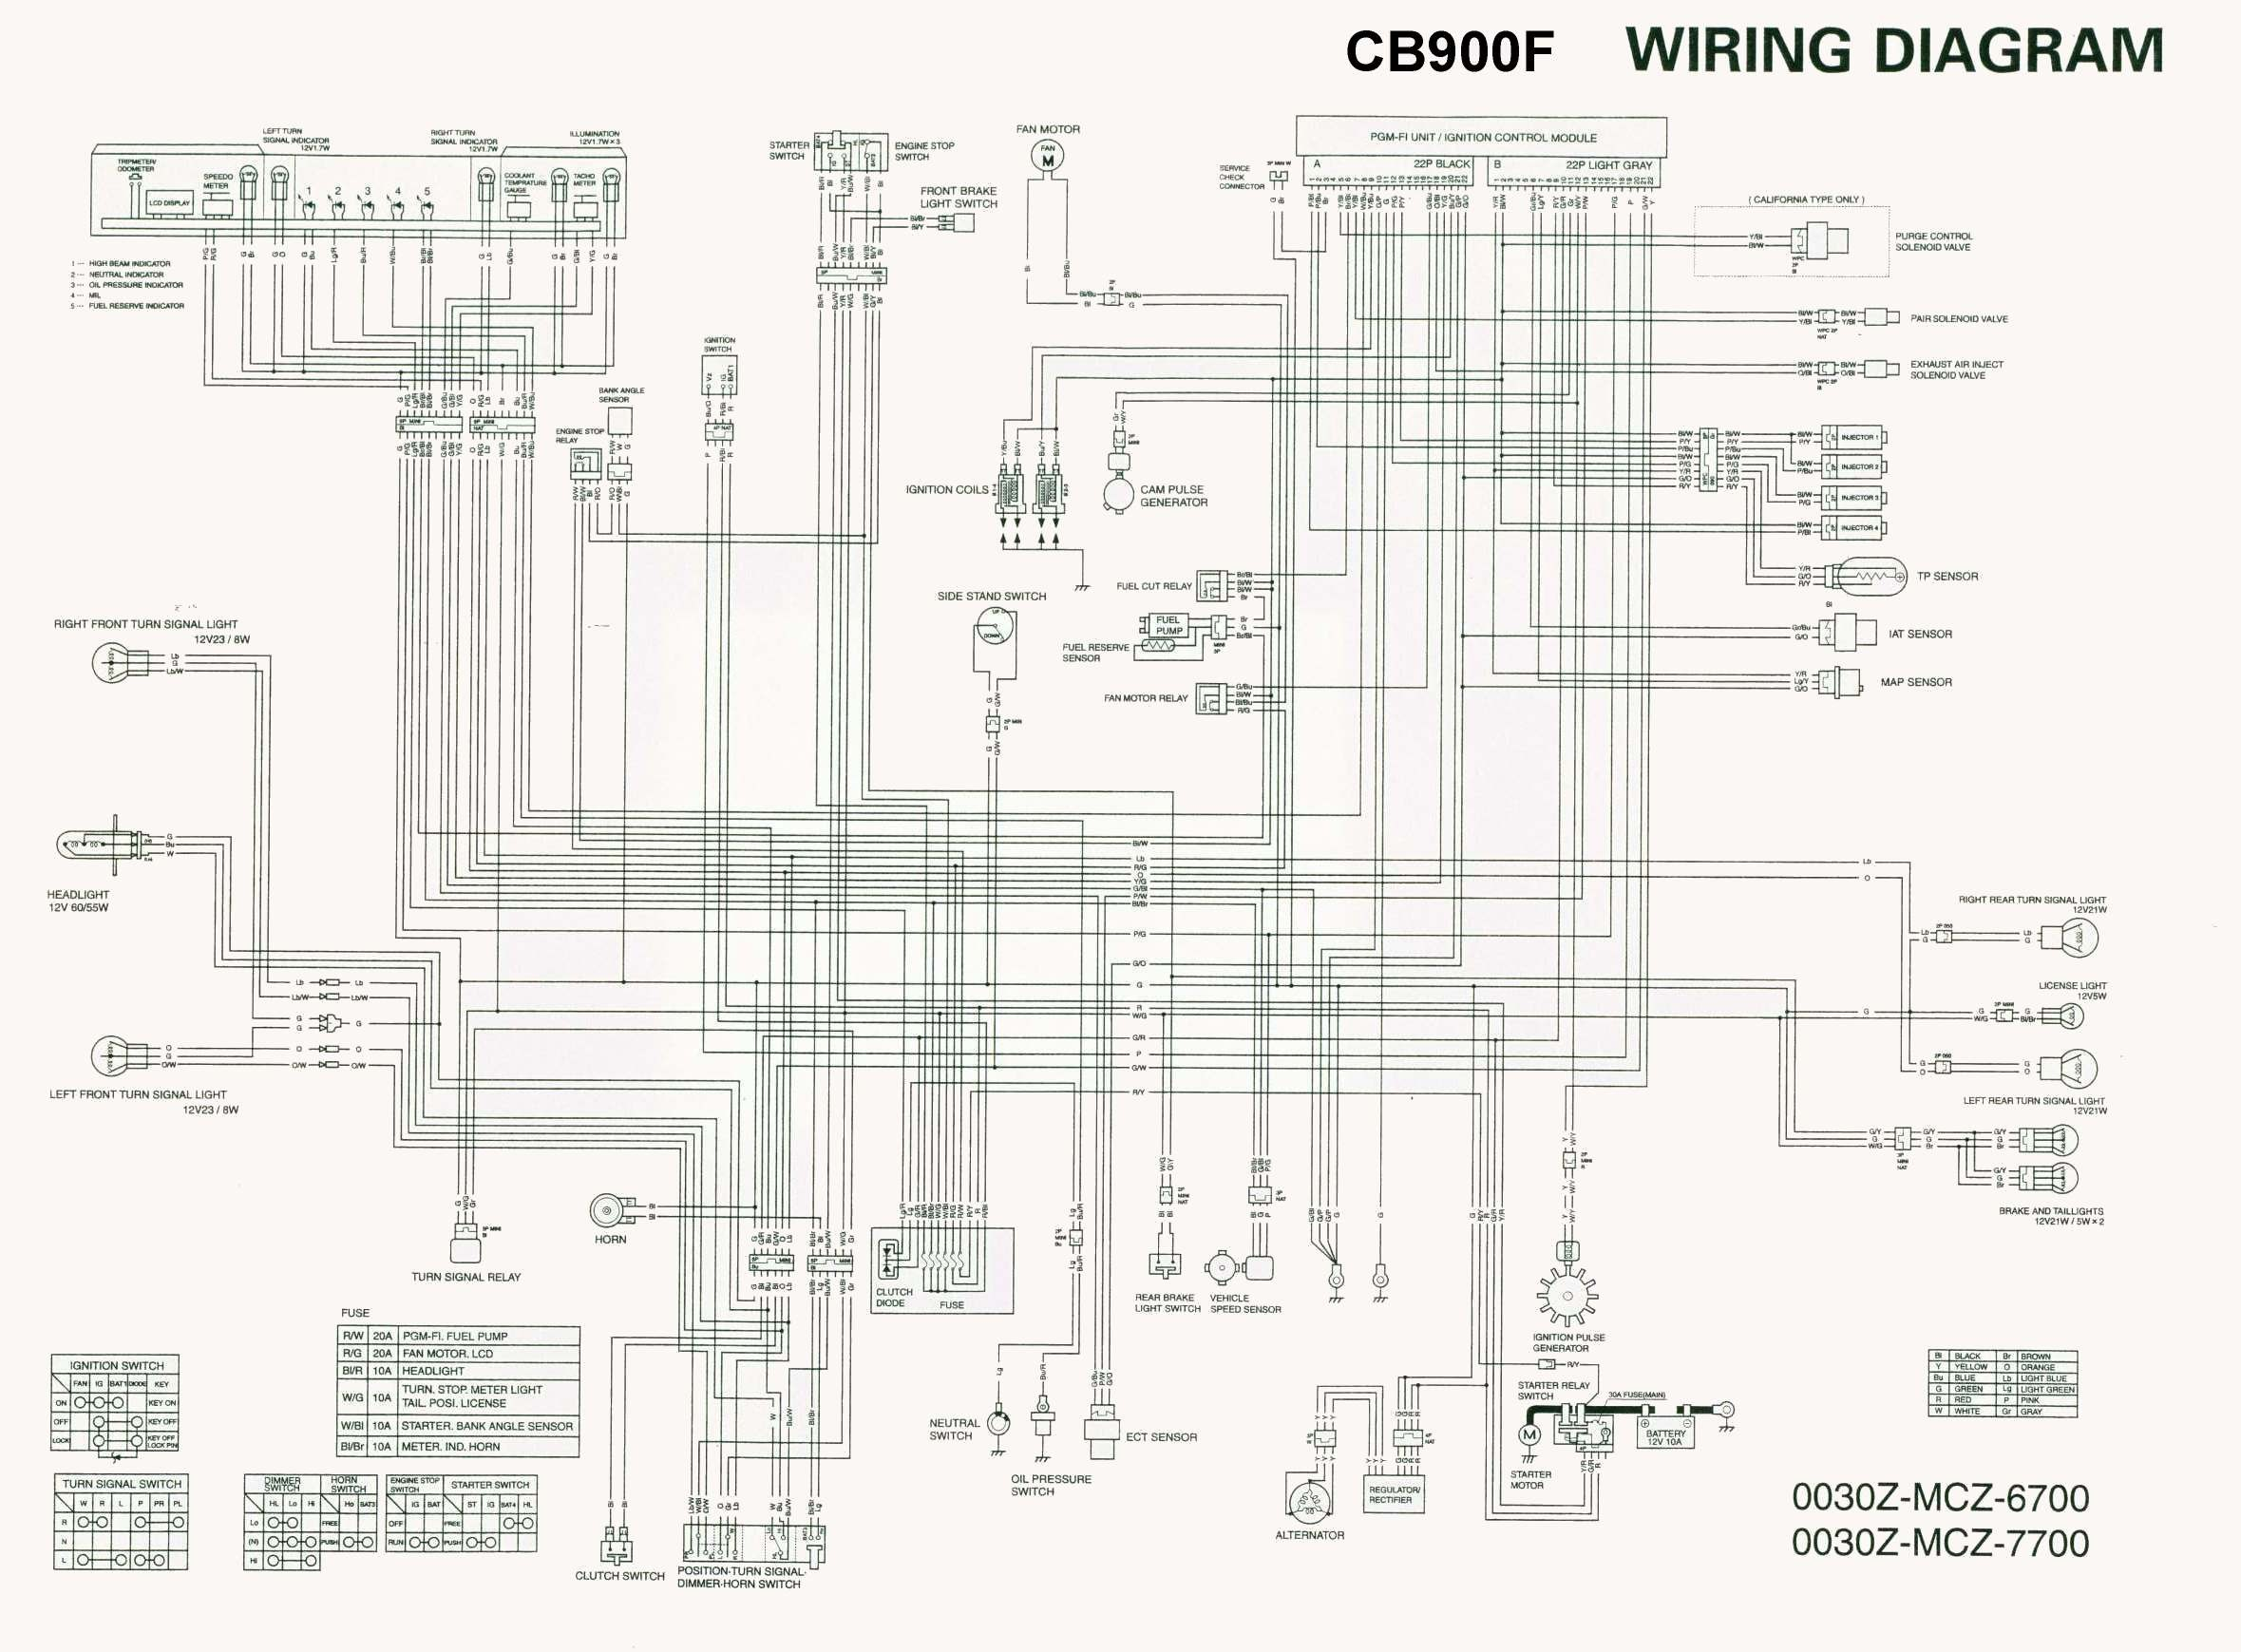 1991 Honda Accord Wiring Diagram Dodge Durango Stereo